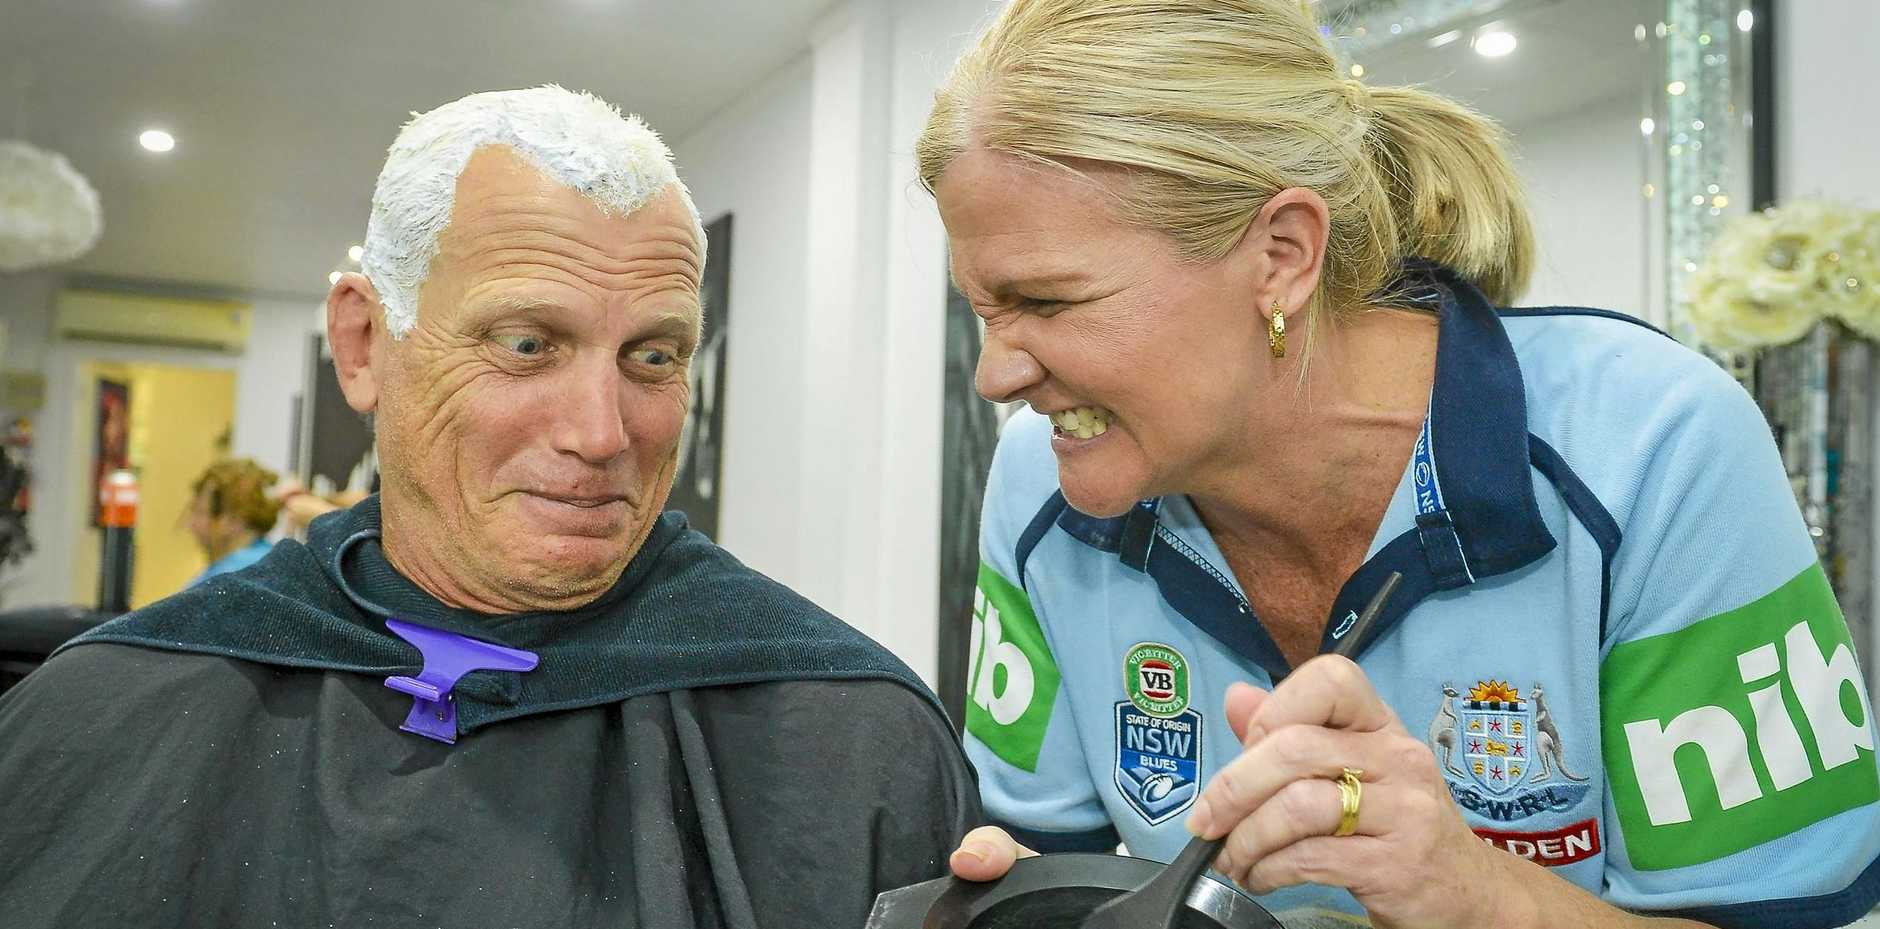 Queensland state of origin legend and Tannum Sands resident, Gary Larson has dyed his hair blue following New South Wales' state of origin win, after losing a bet with longtime friend Lisa Emmert.